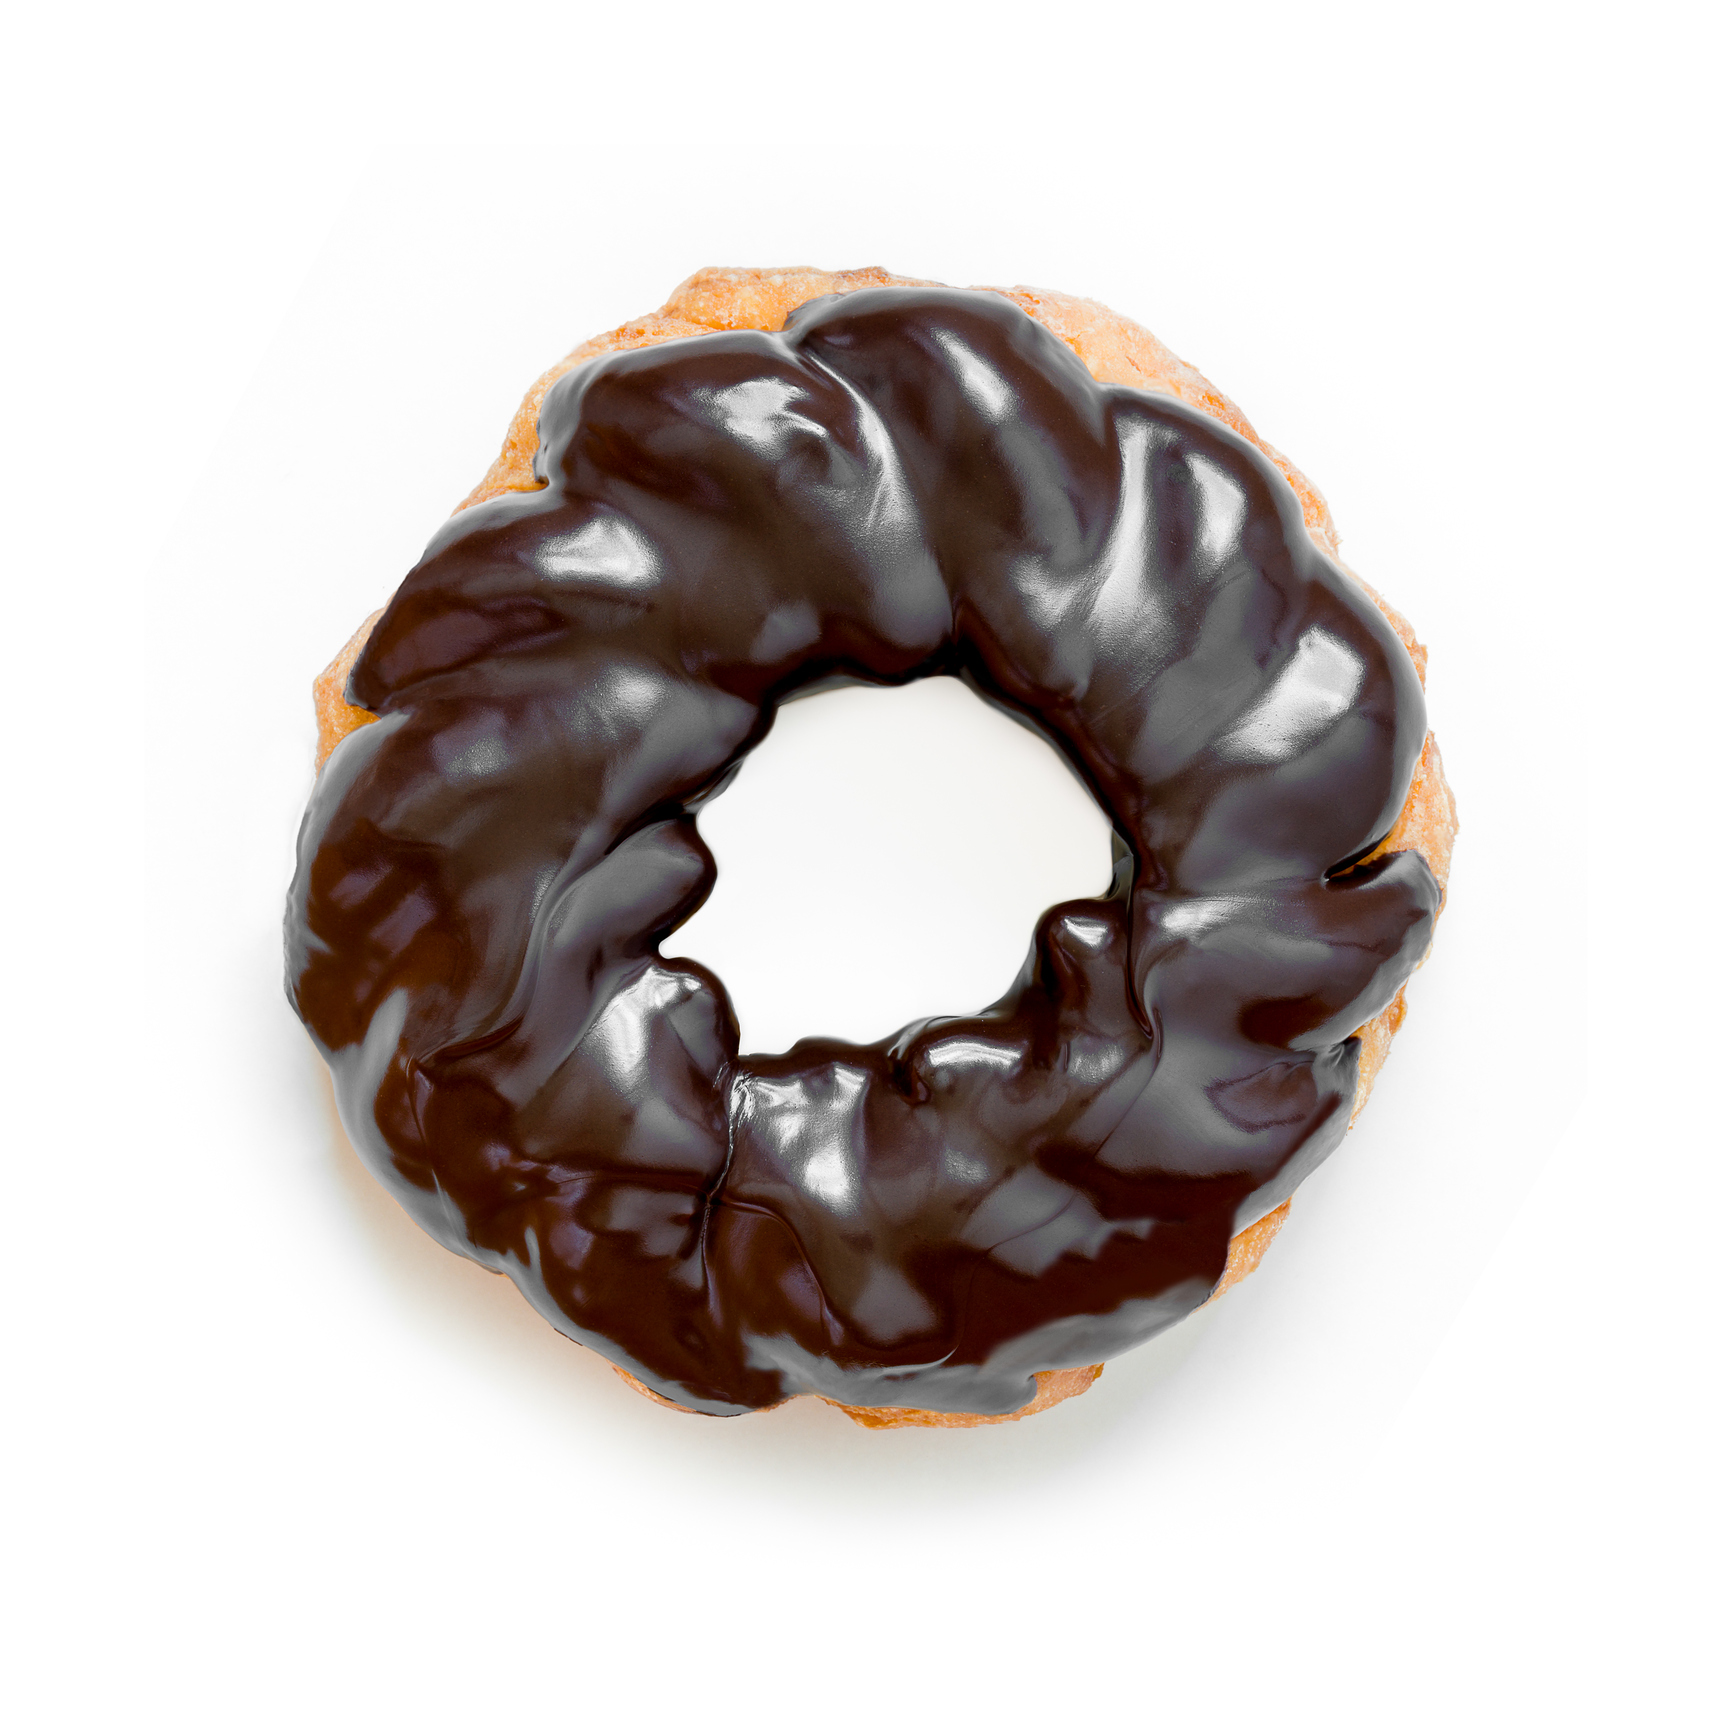 getty-cruller-image